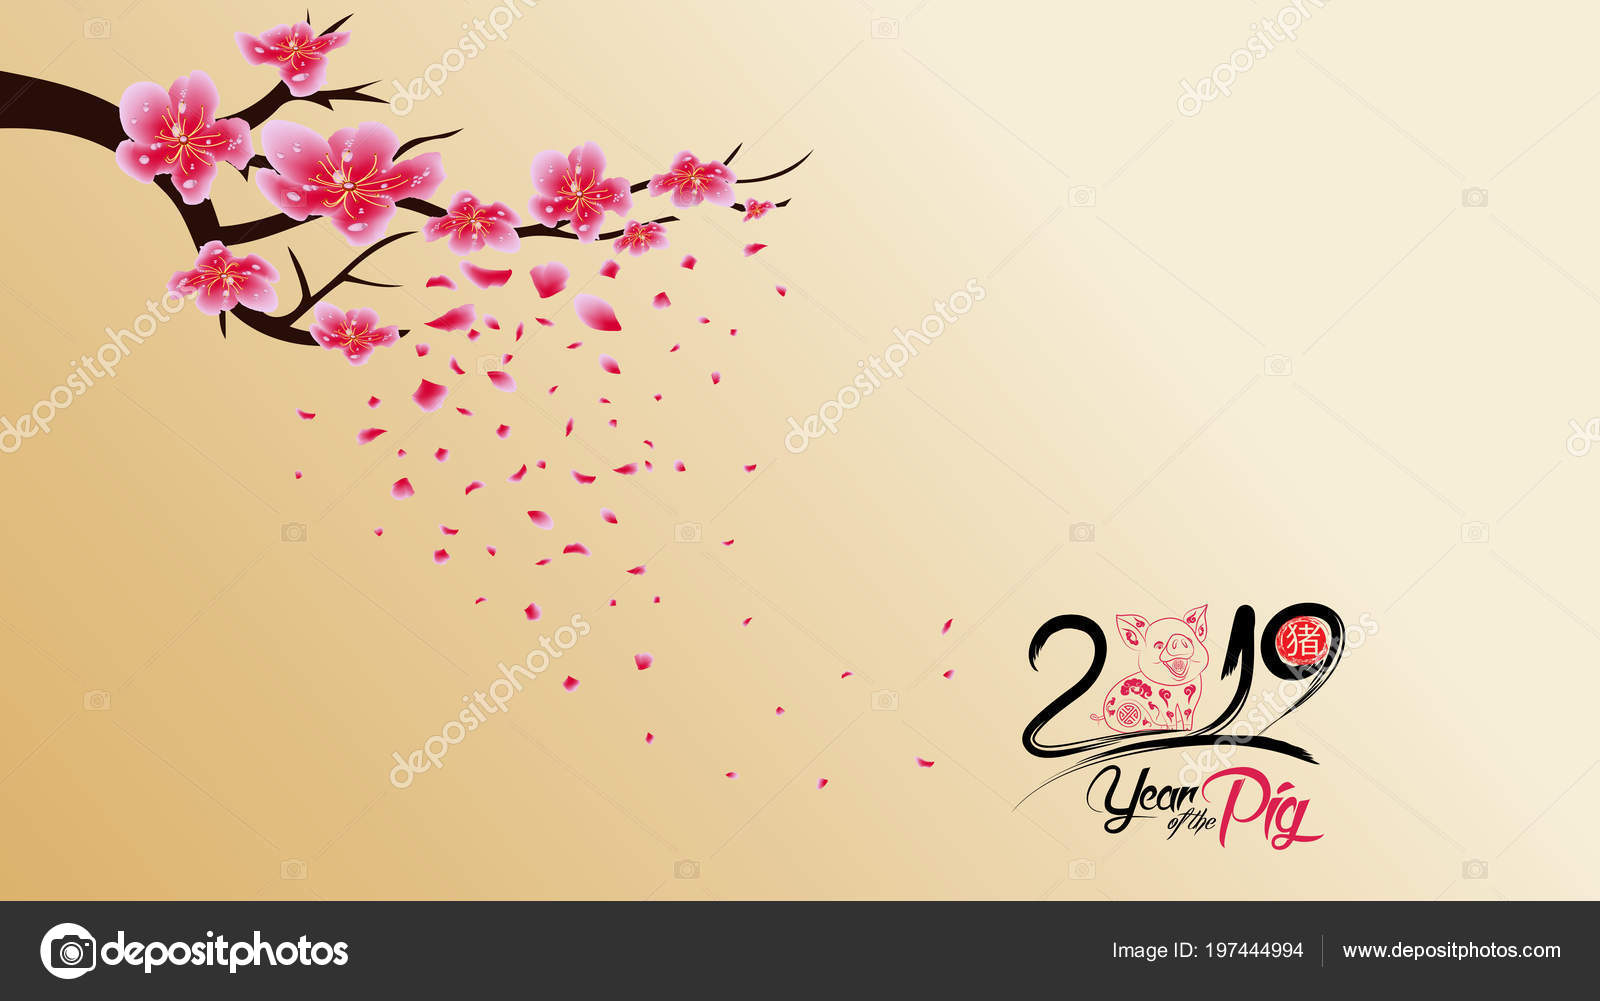 chinese new year 2019 blossom wallpapers year pig hieroglyph pig stock vector